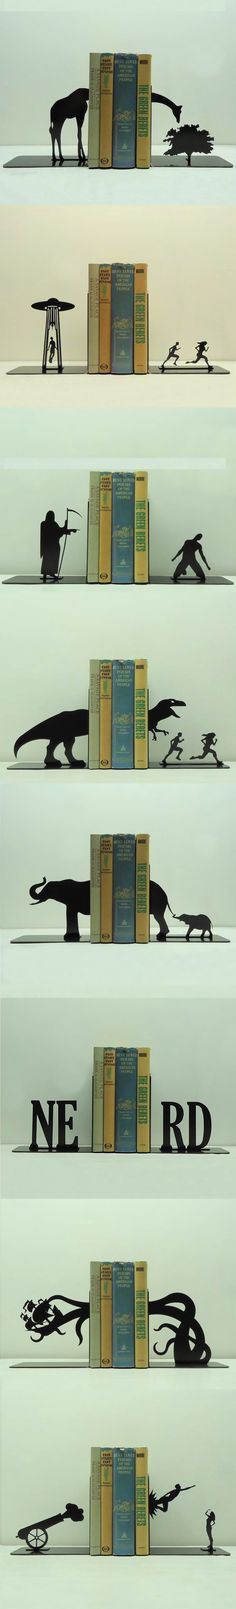 Knob Creek Metal Arts creates unique, whimsical and functional bookends that will fit with any lifestyle or hobby. We pride ourselves in our original designs and strive to keep creating original pieces for the world to enjoy. I Love Books, My Books, Somerset, Book Nooks, Book Nerd, T Rex, Book Lovers, Bookends, Cool Stuff